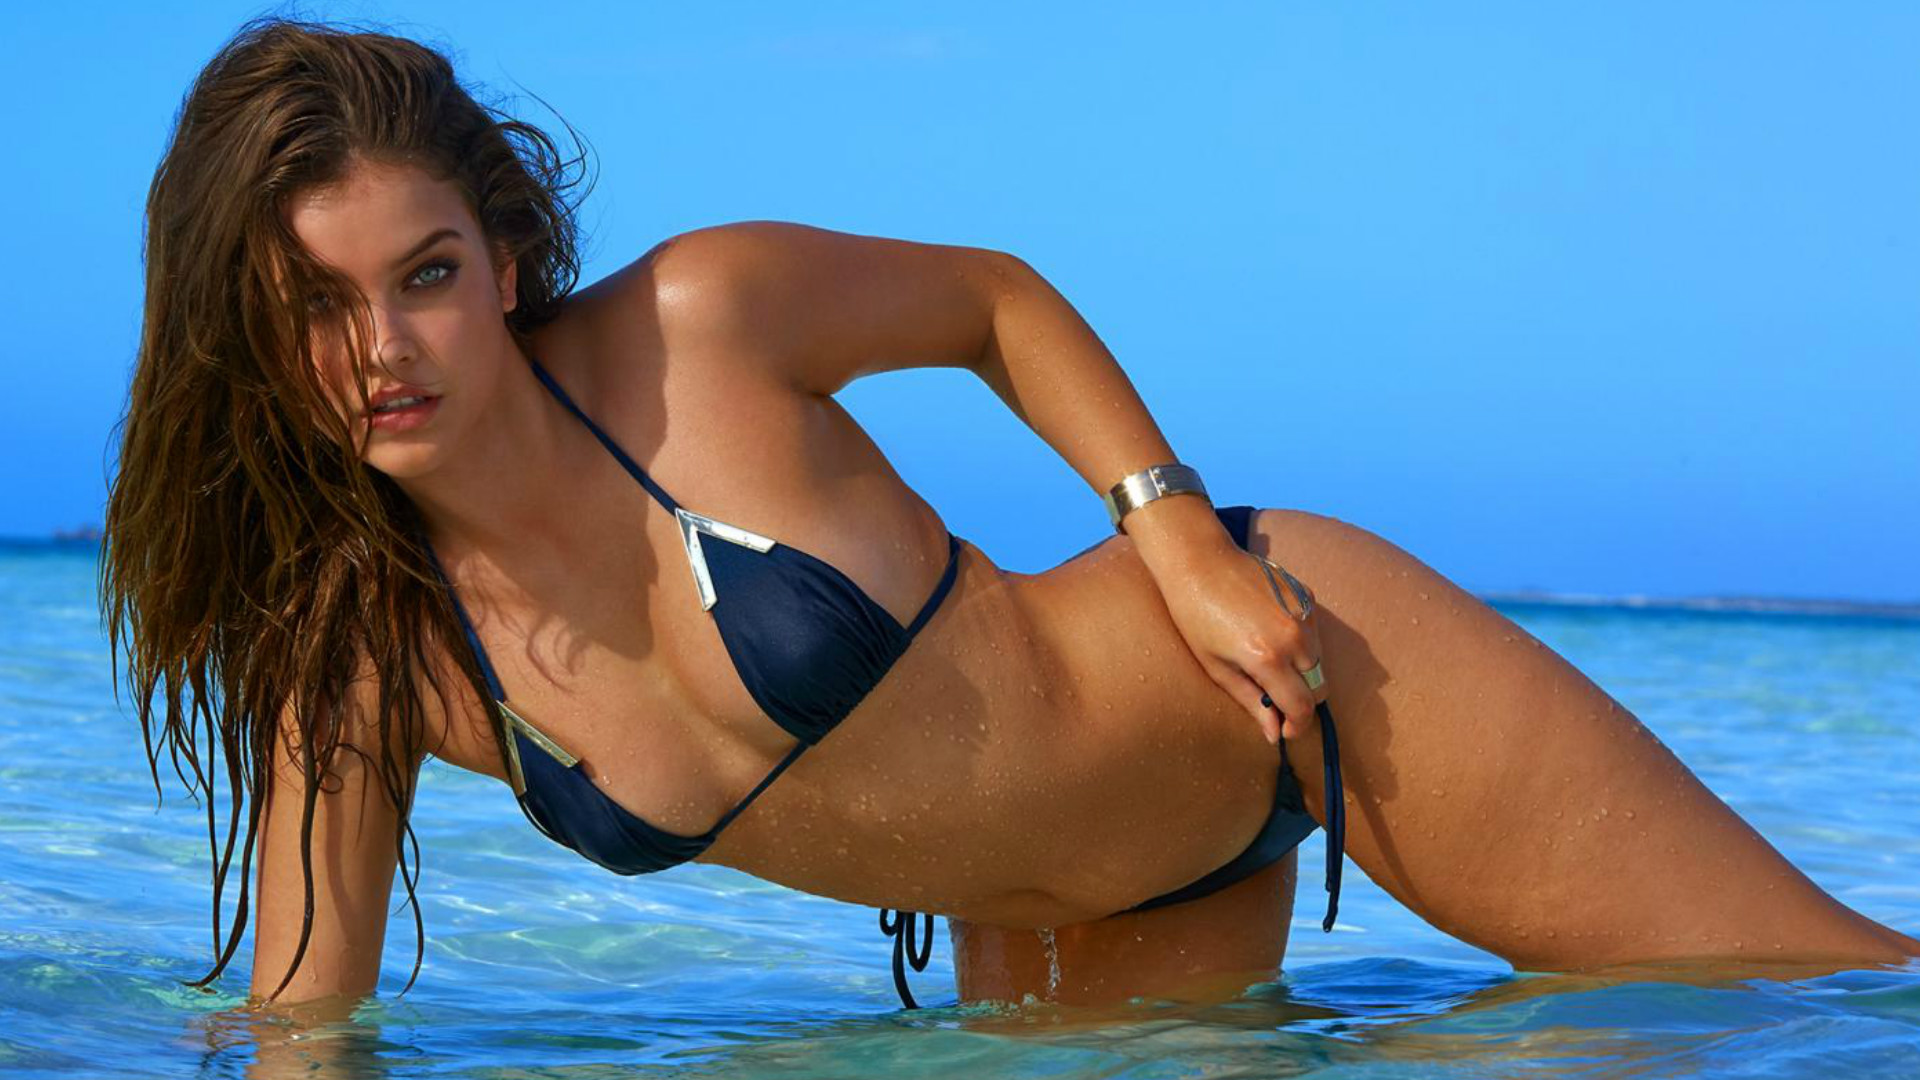 Barbara Palvin poses for Sports Illustrated